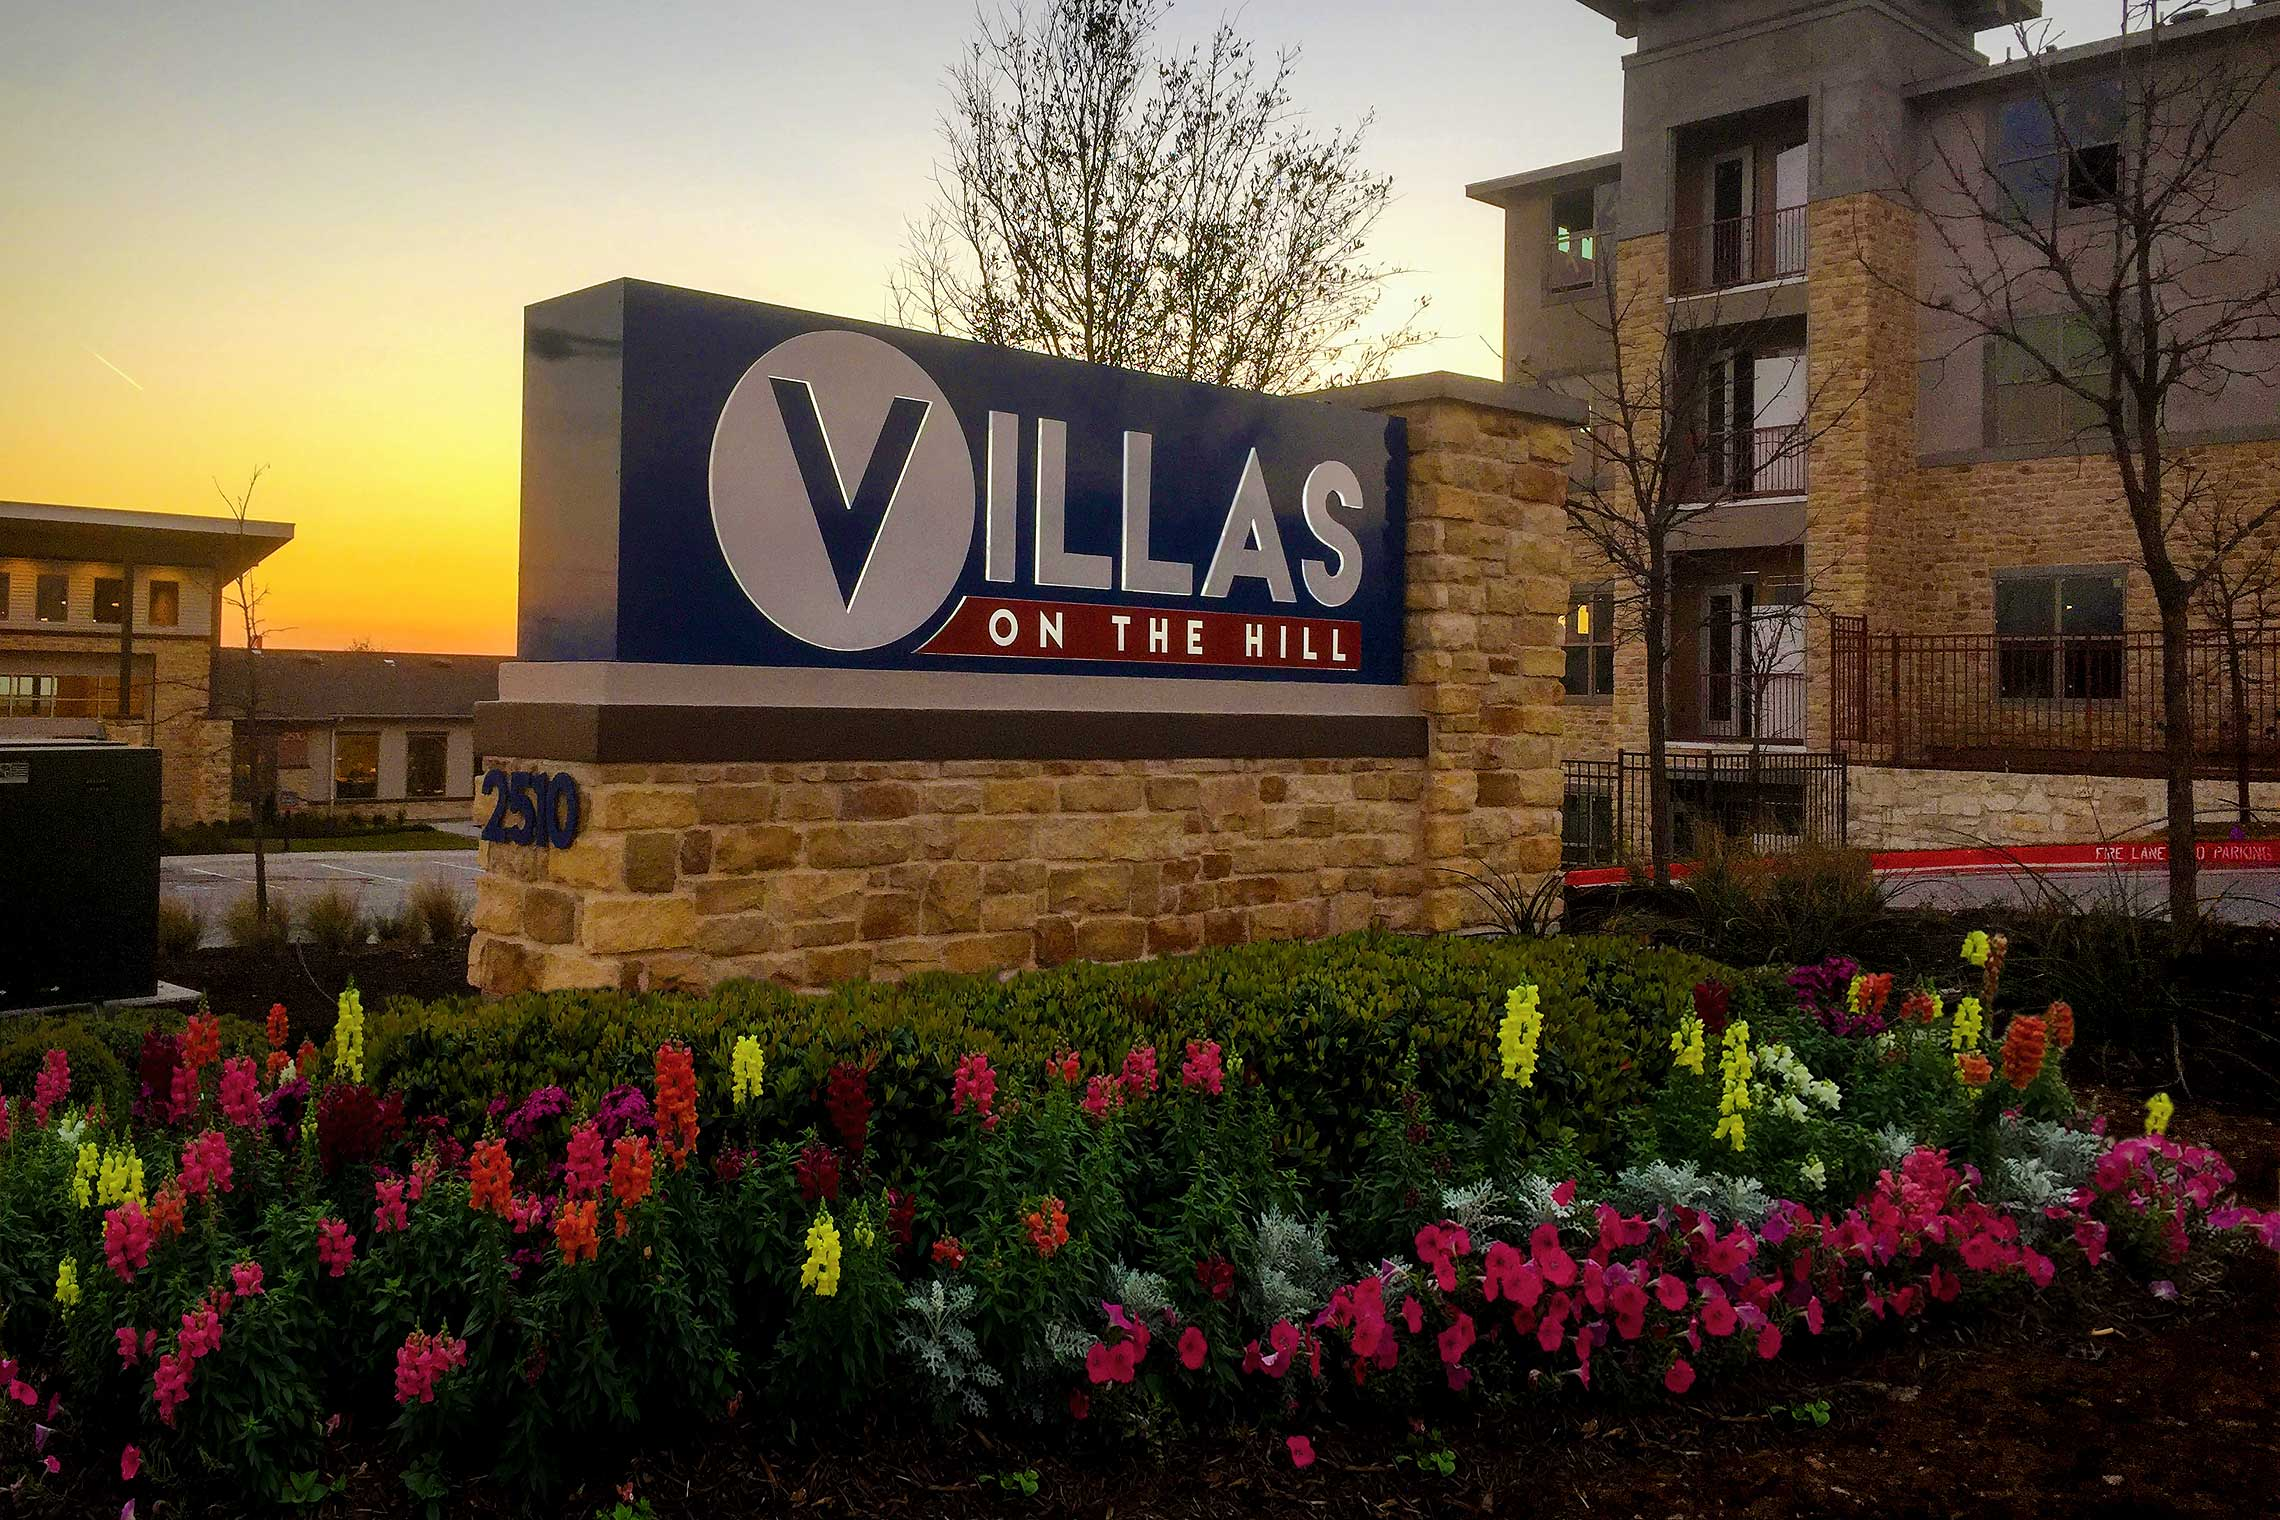 Villas on the Hill Apartments - Contemporary LED Edge-Lit Letters Monument